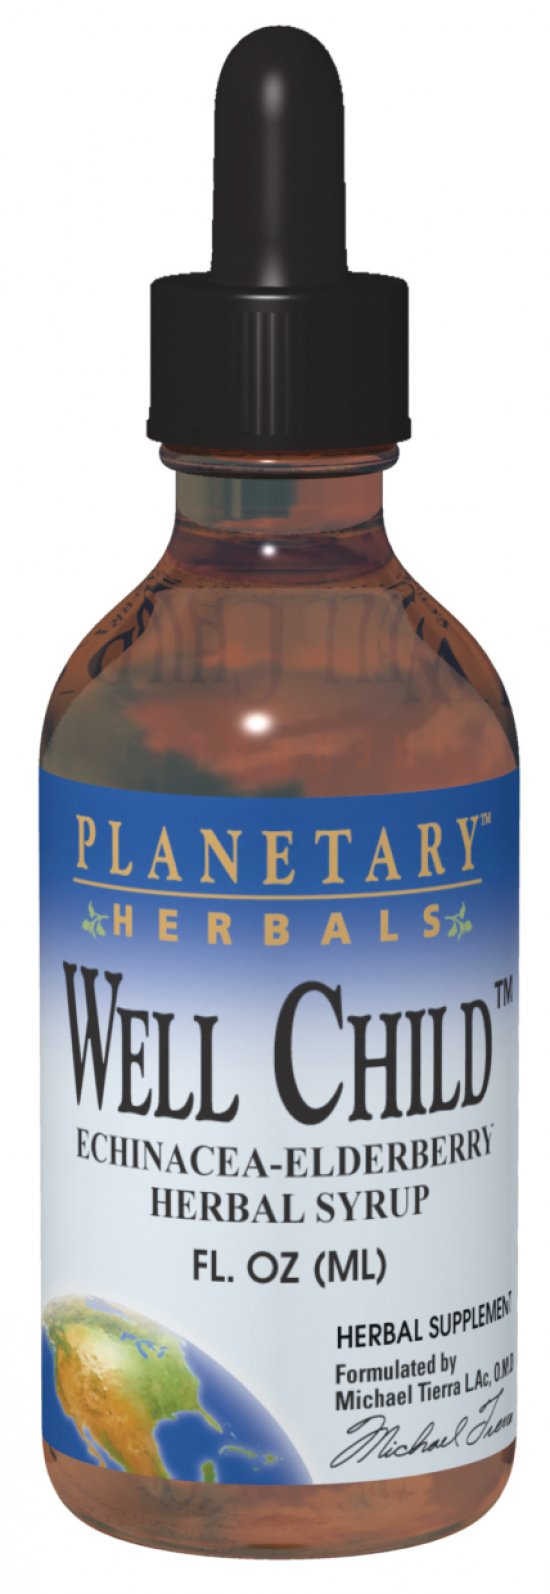 PLANETARY HERBALS: Well Child Echinacea-Elderberry Syrup 8 fl oz